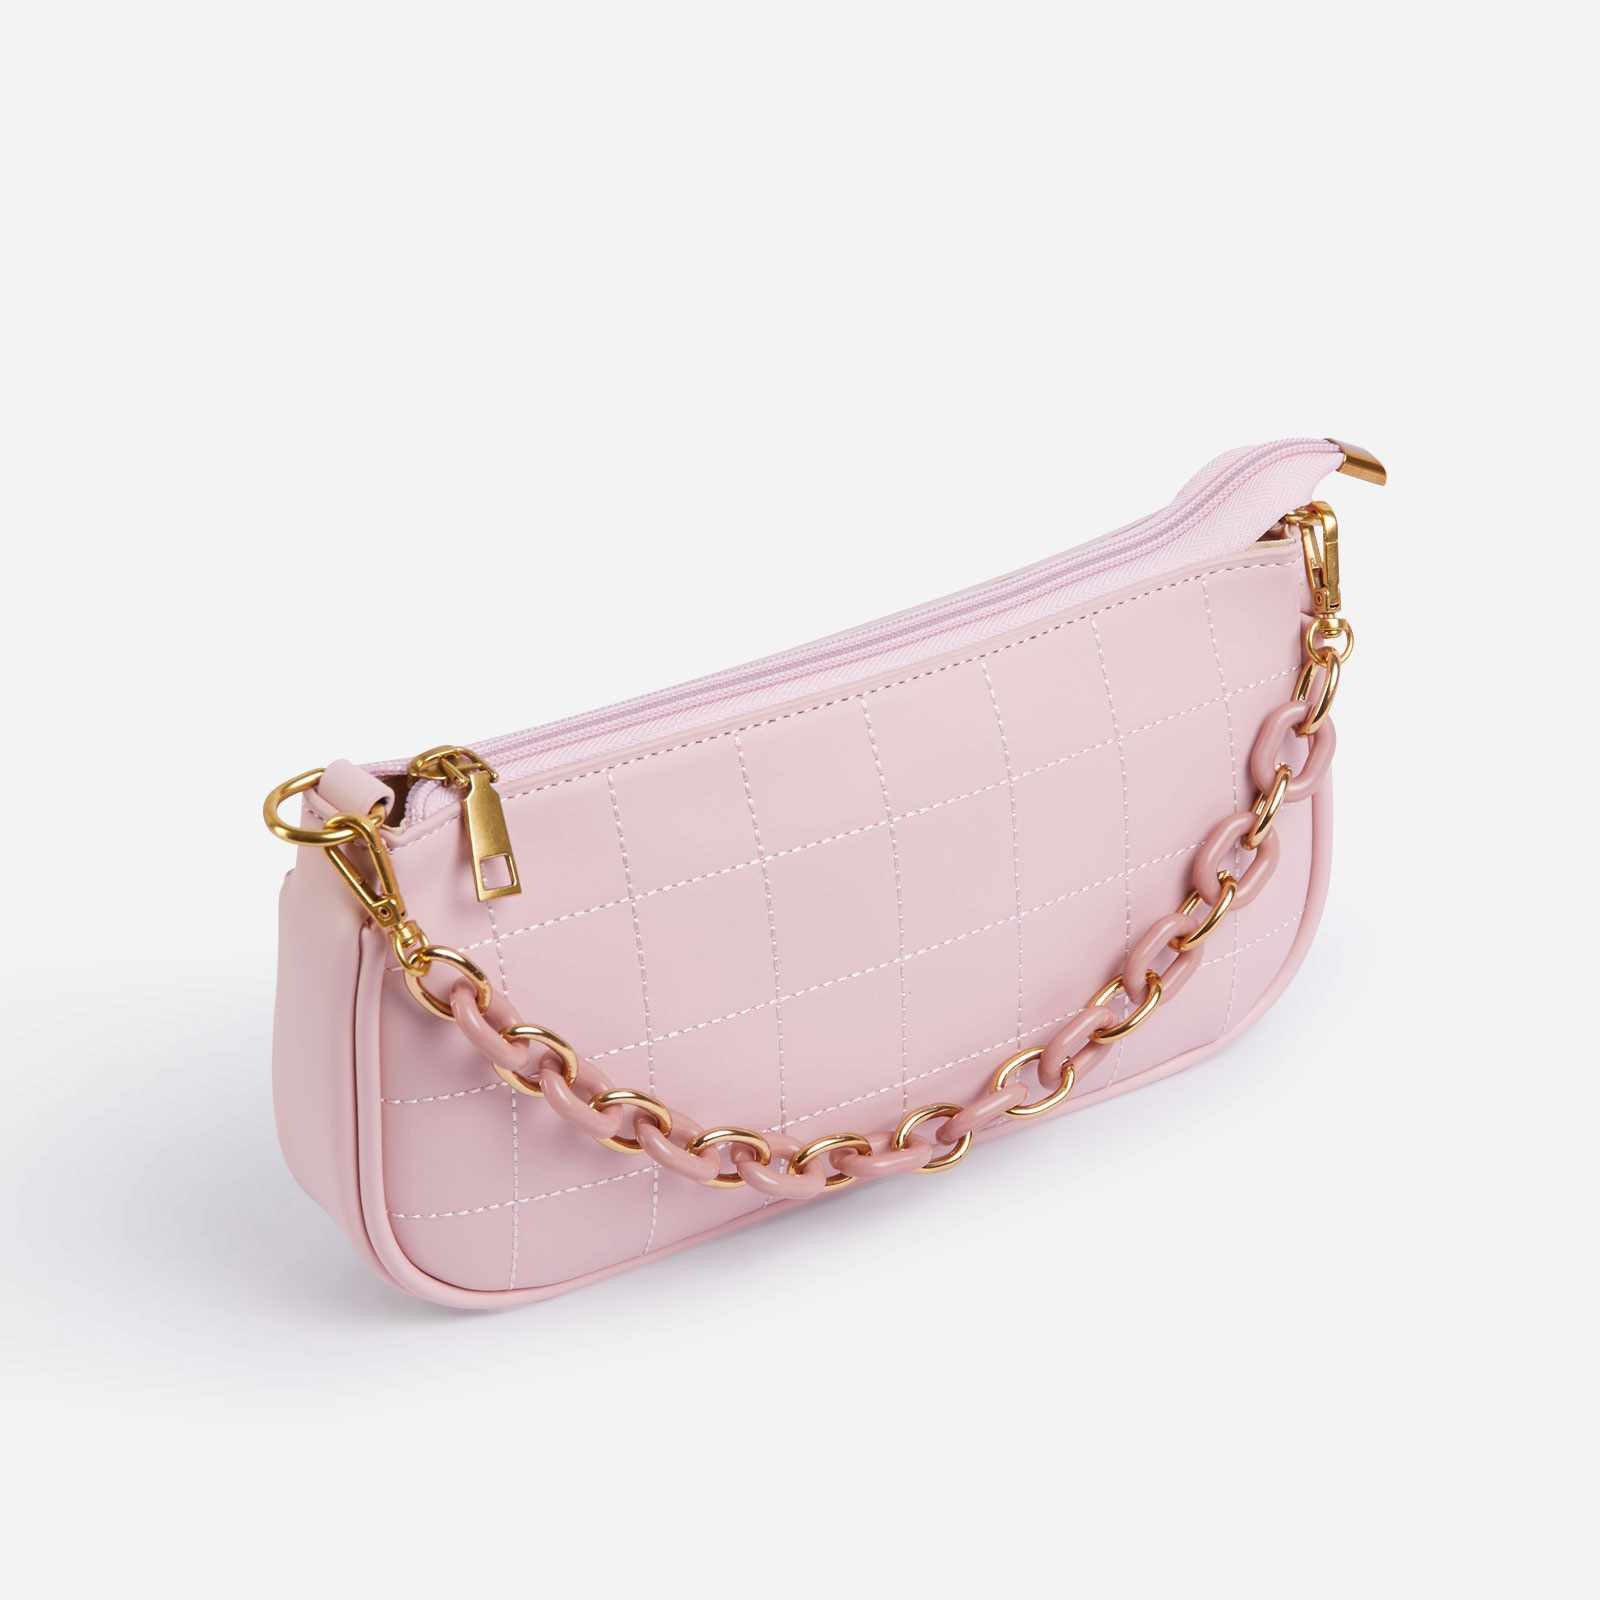 Chain Detail Baguette Bag In Pink Faux Leather